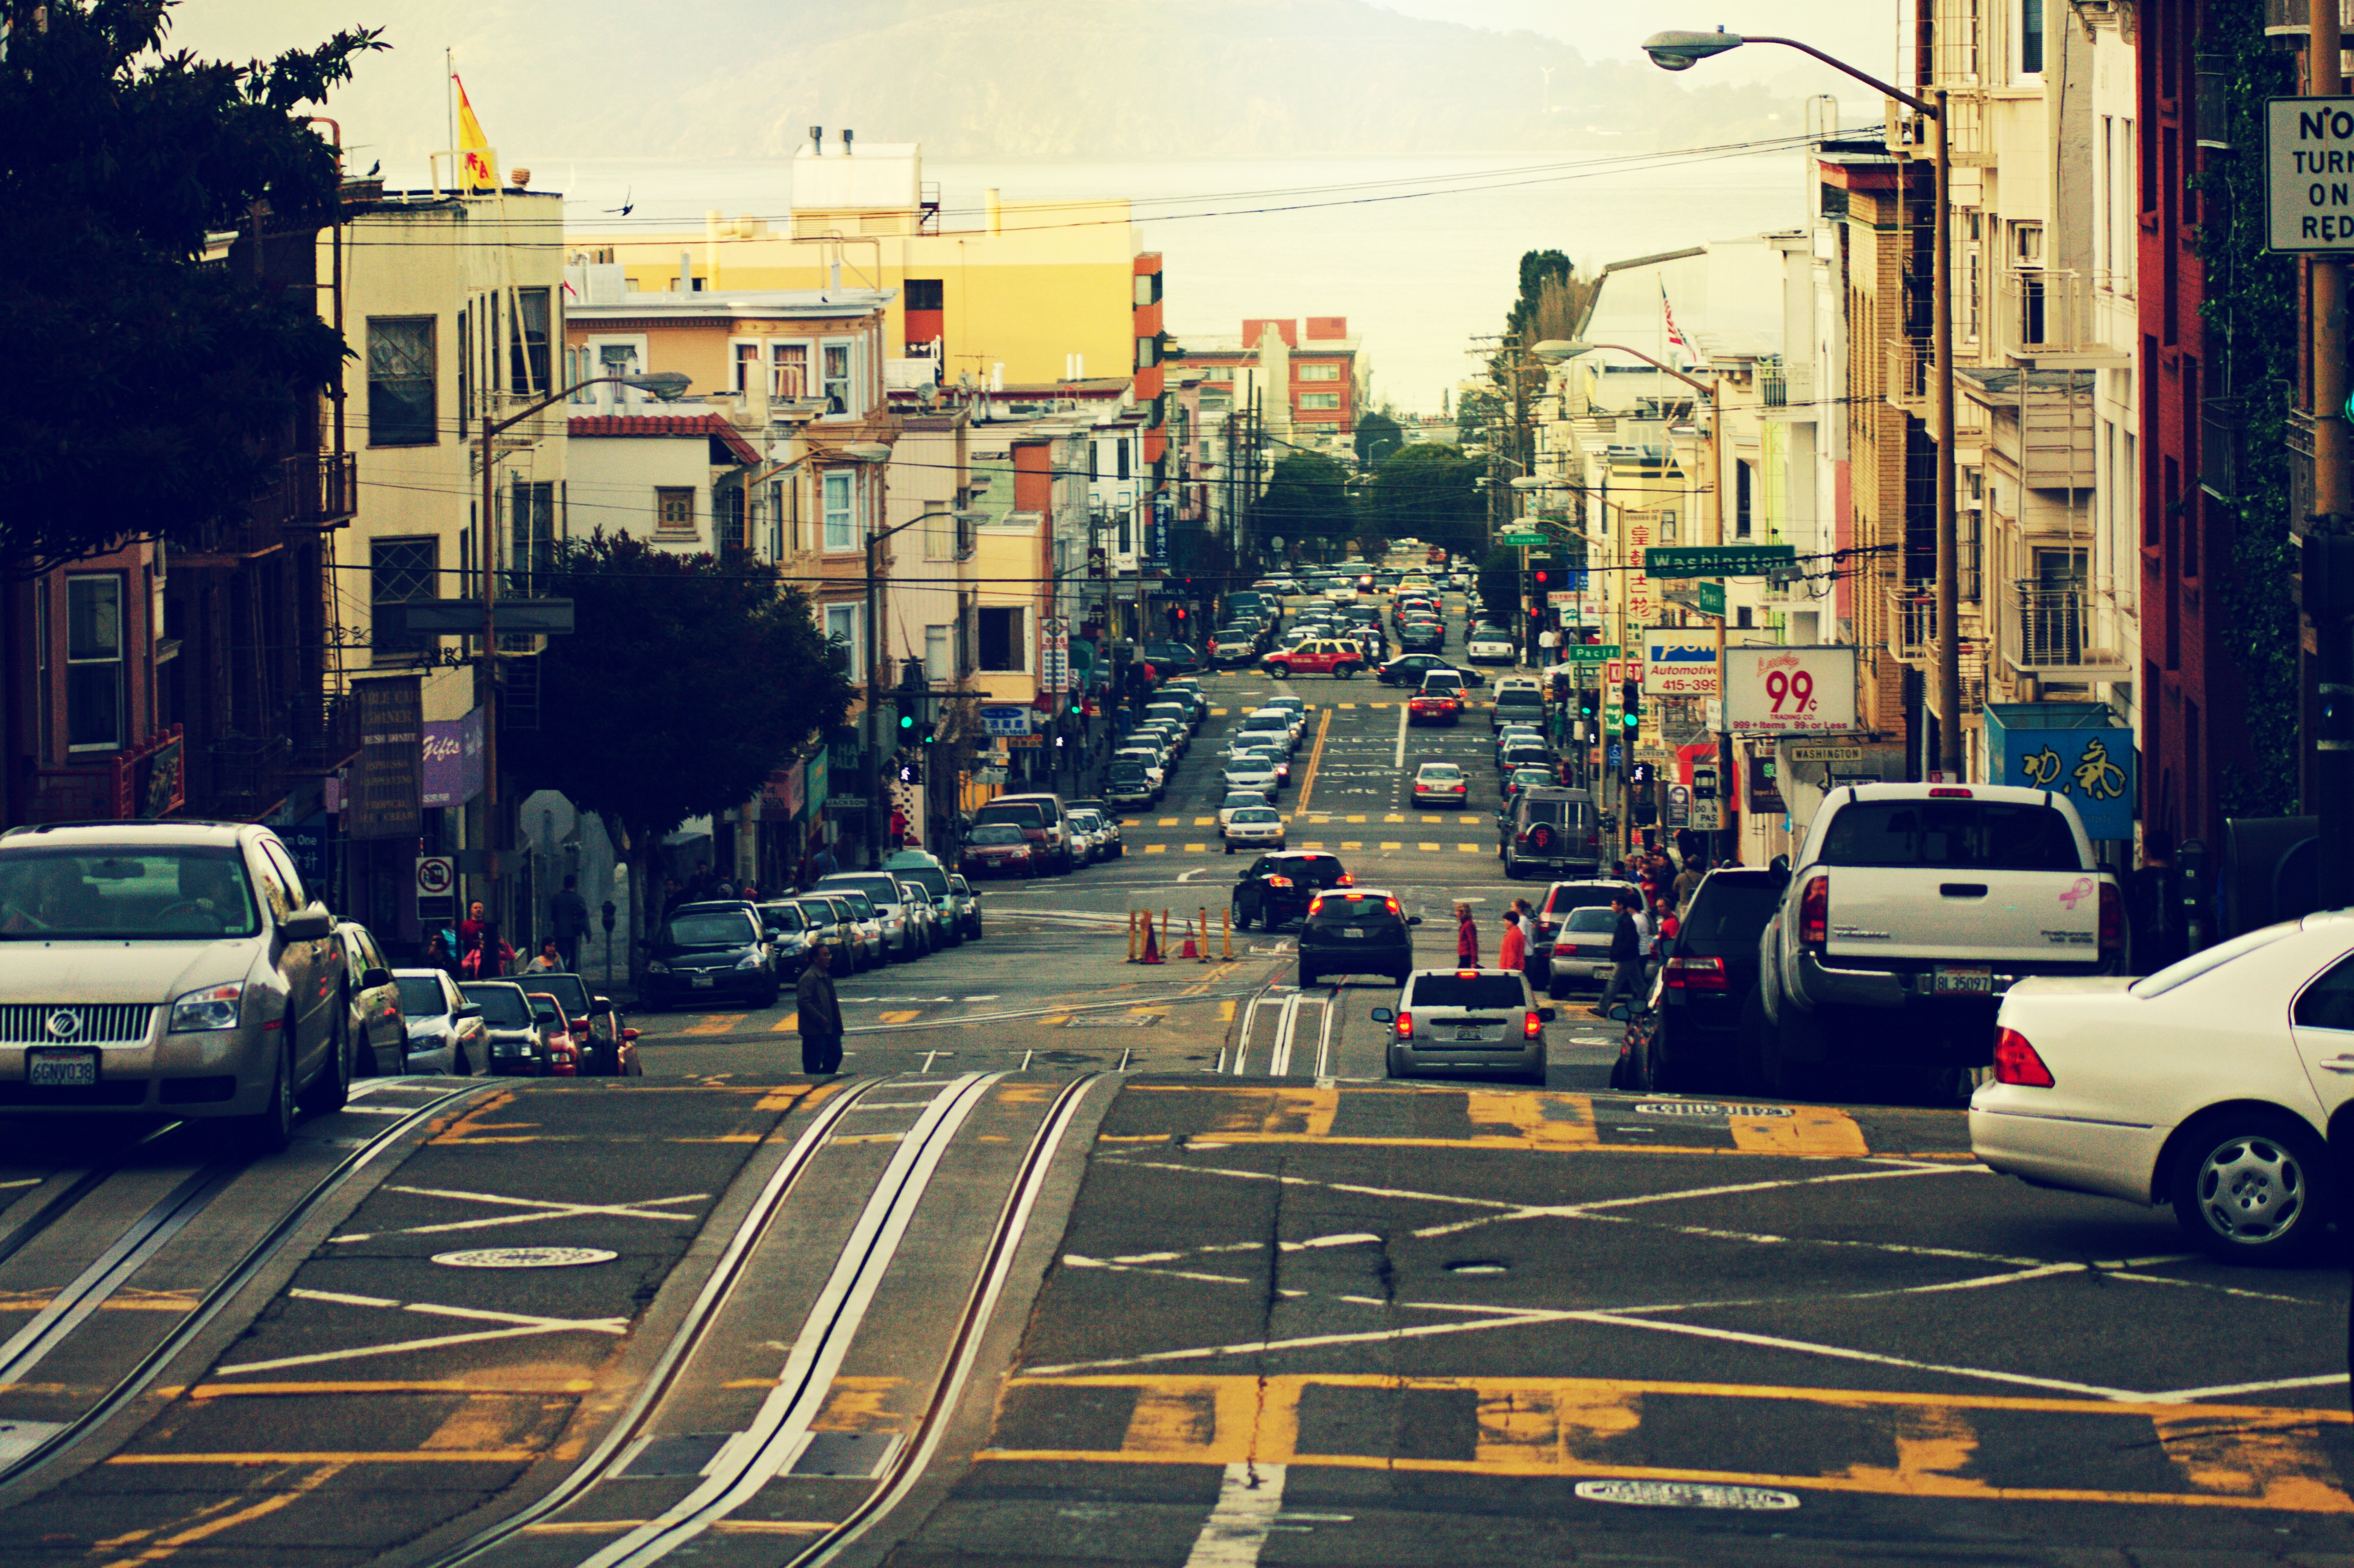 Hd Car Pictures For Wallpaper File Powell Street San Francisco Jpg Wikimedia Commons